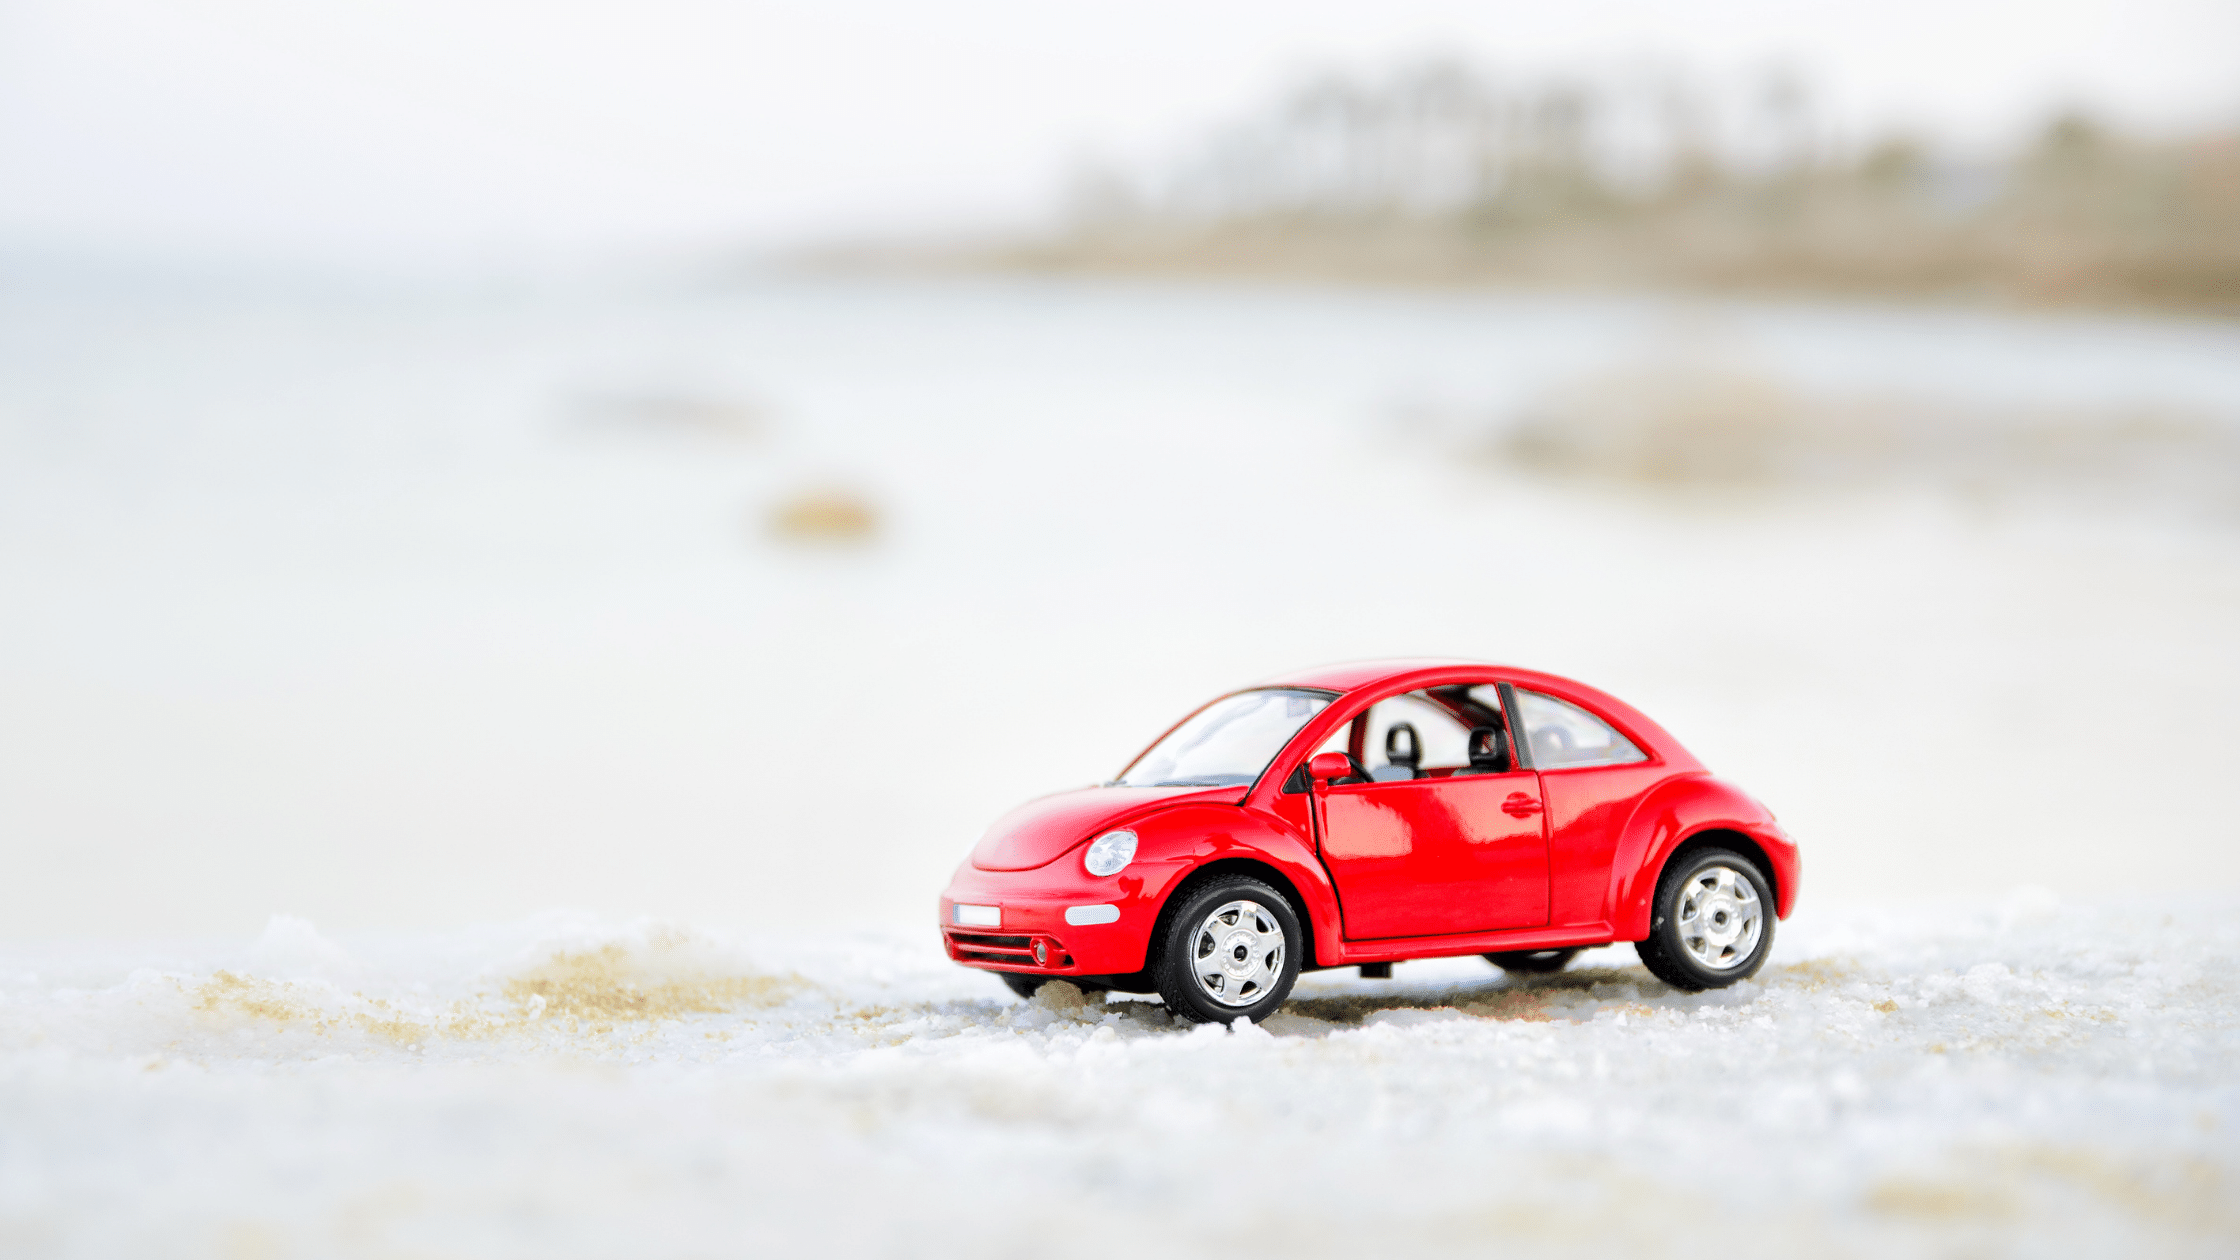 Red toy car driving in the snow